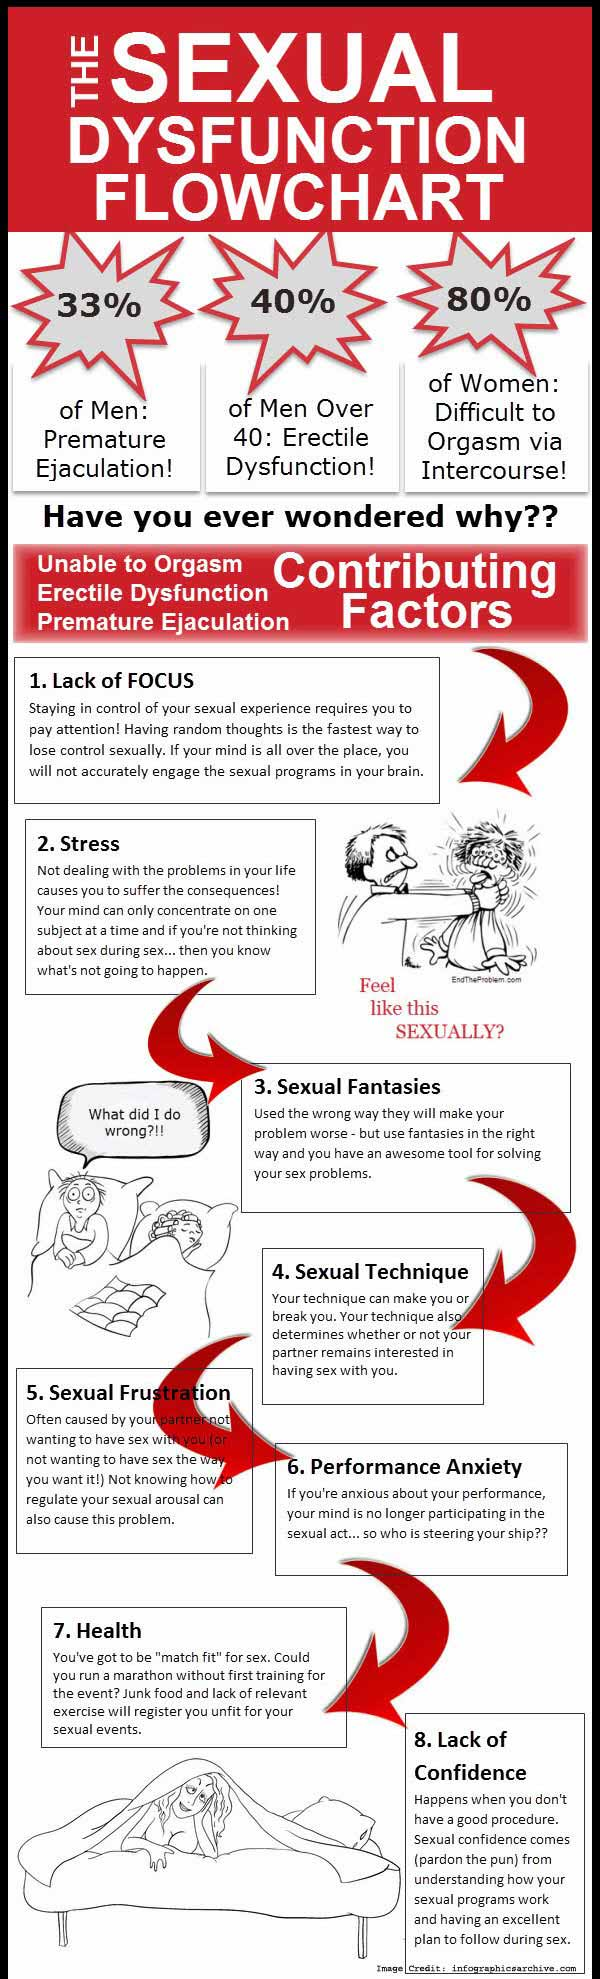 The Sexual Dysfunction